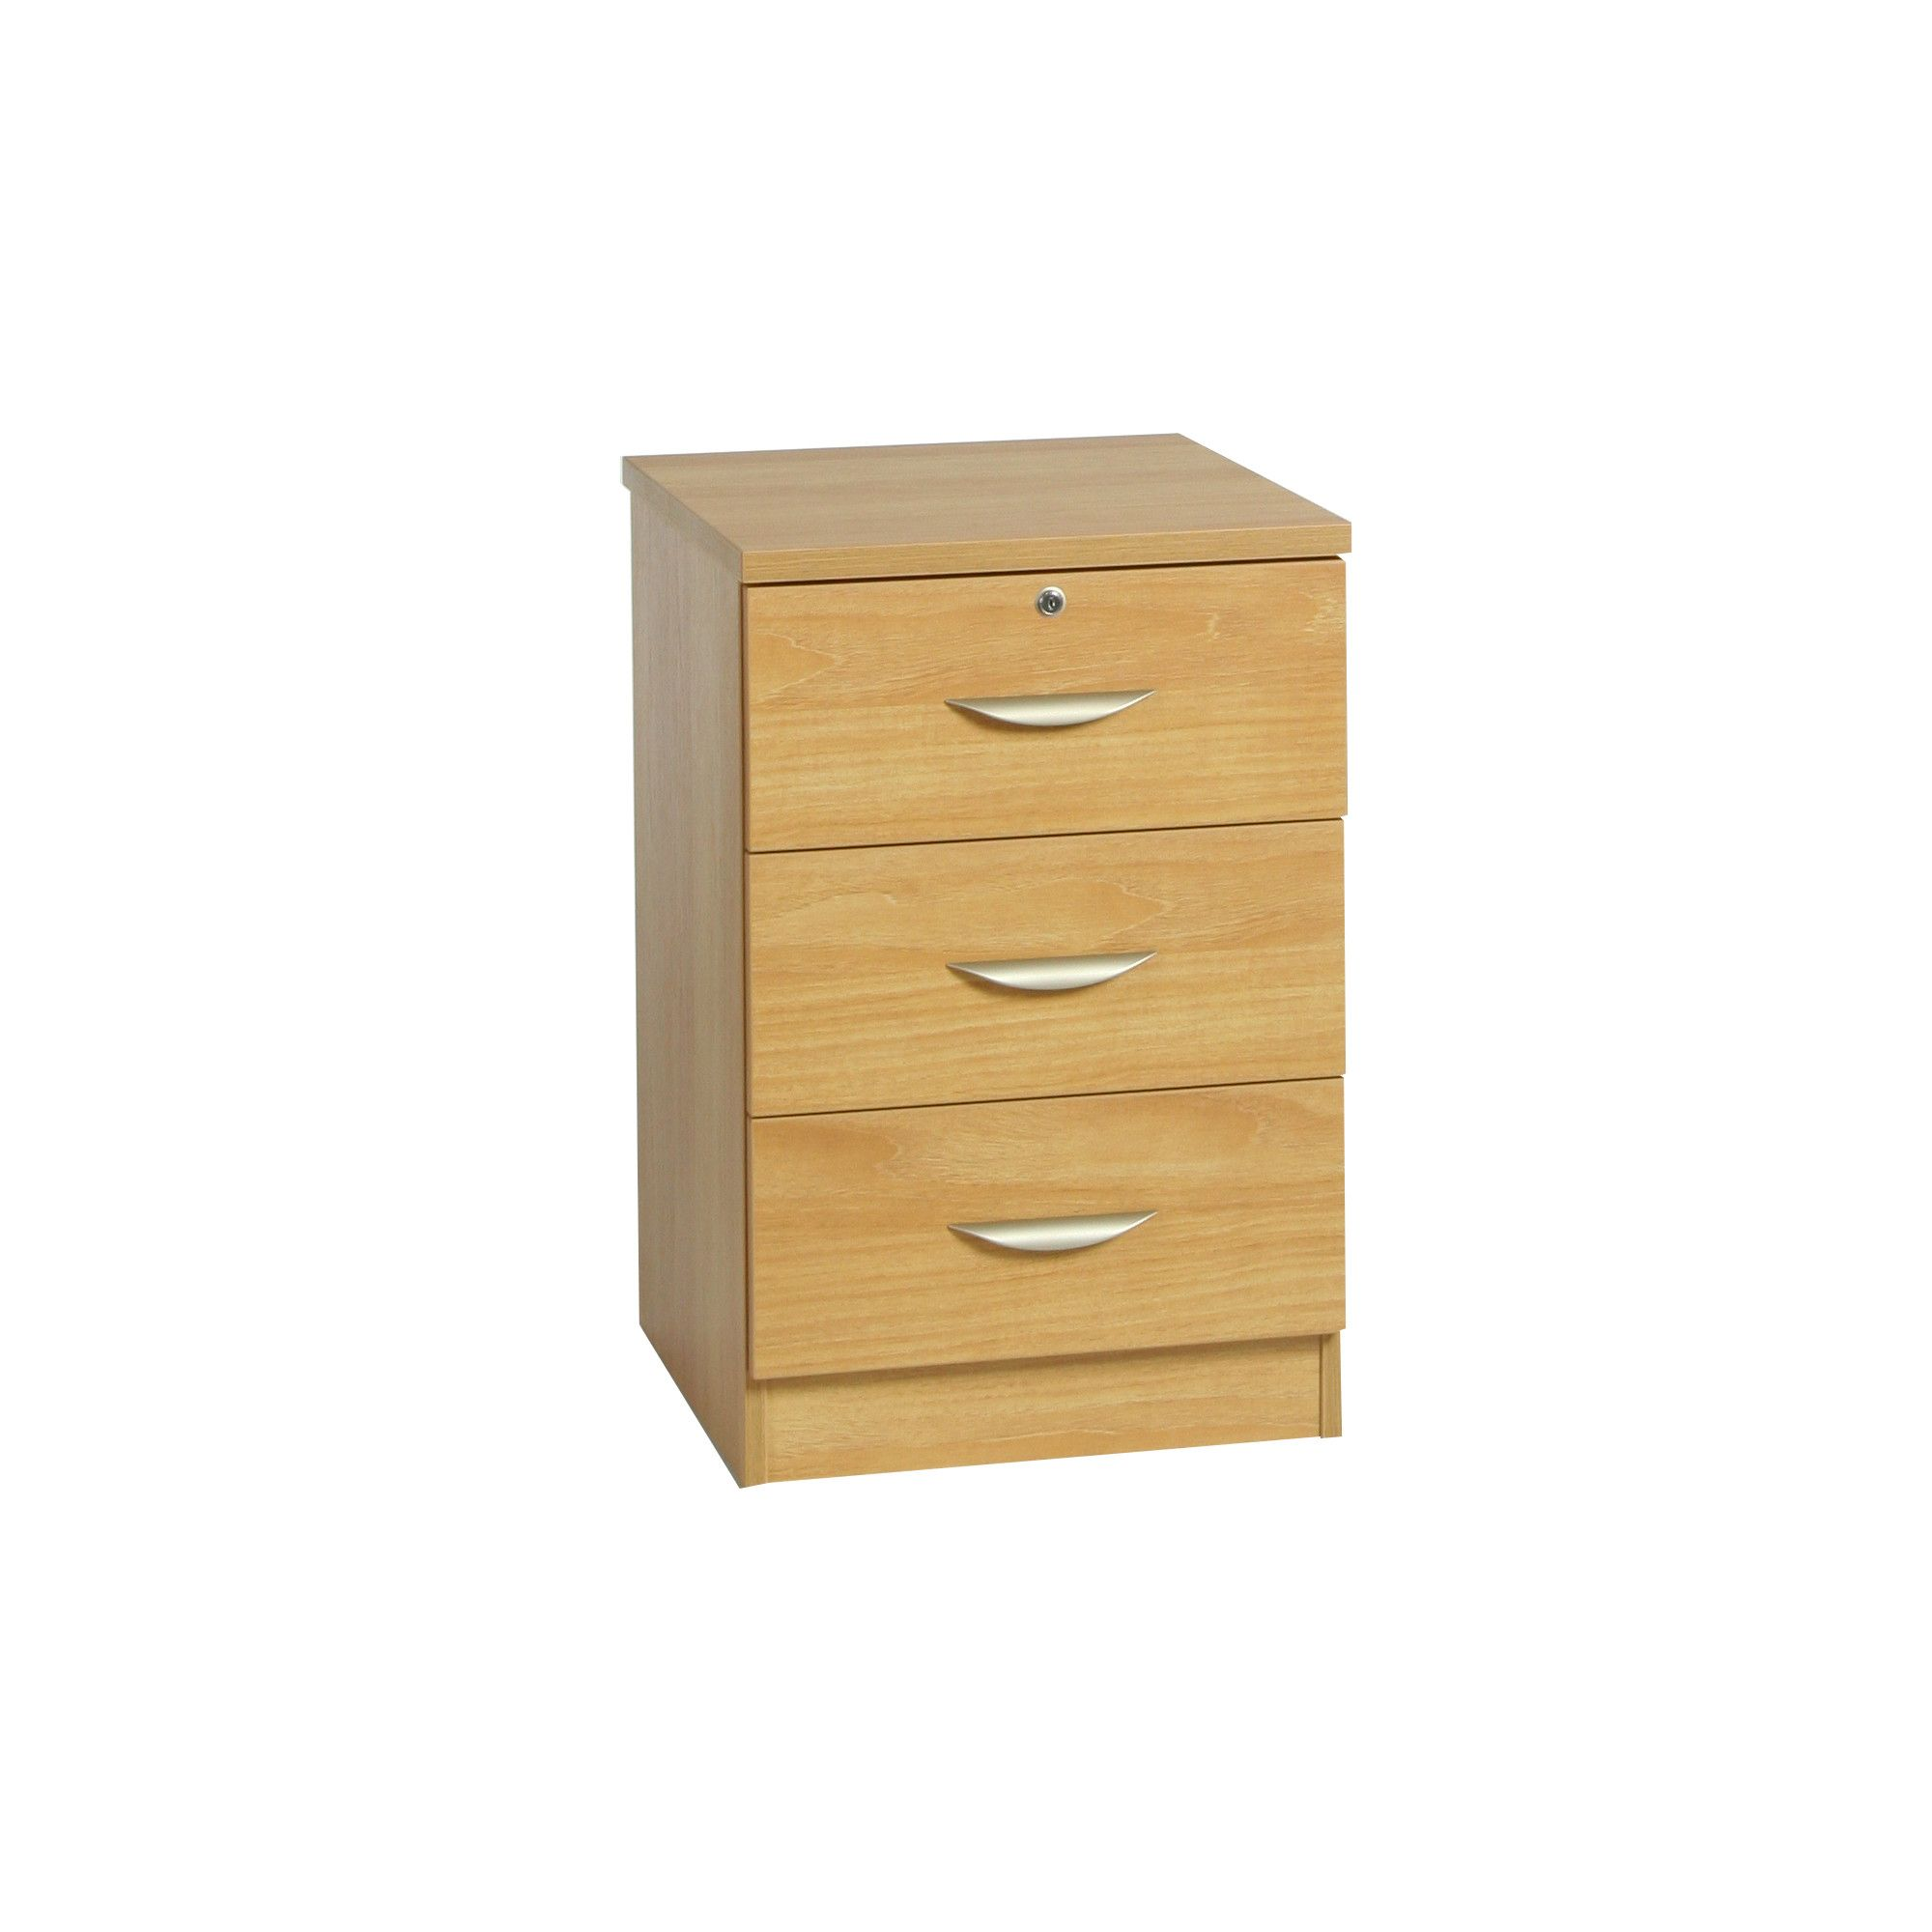 Enduro Three Drawer Wooden Pedestal / Audio Visual Unit - Walnut at Tesco Direct